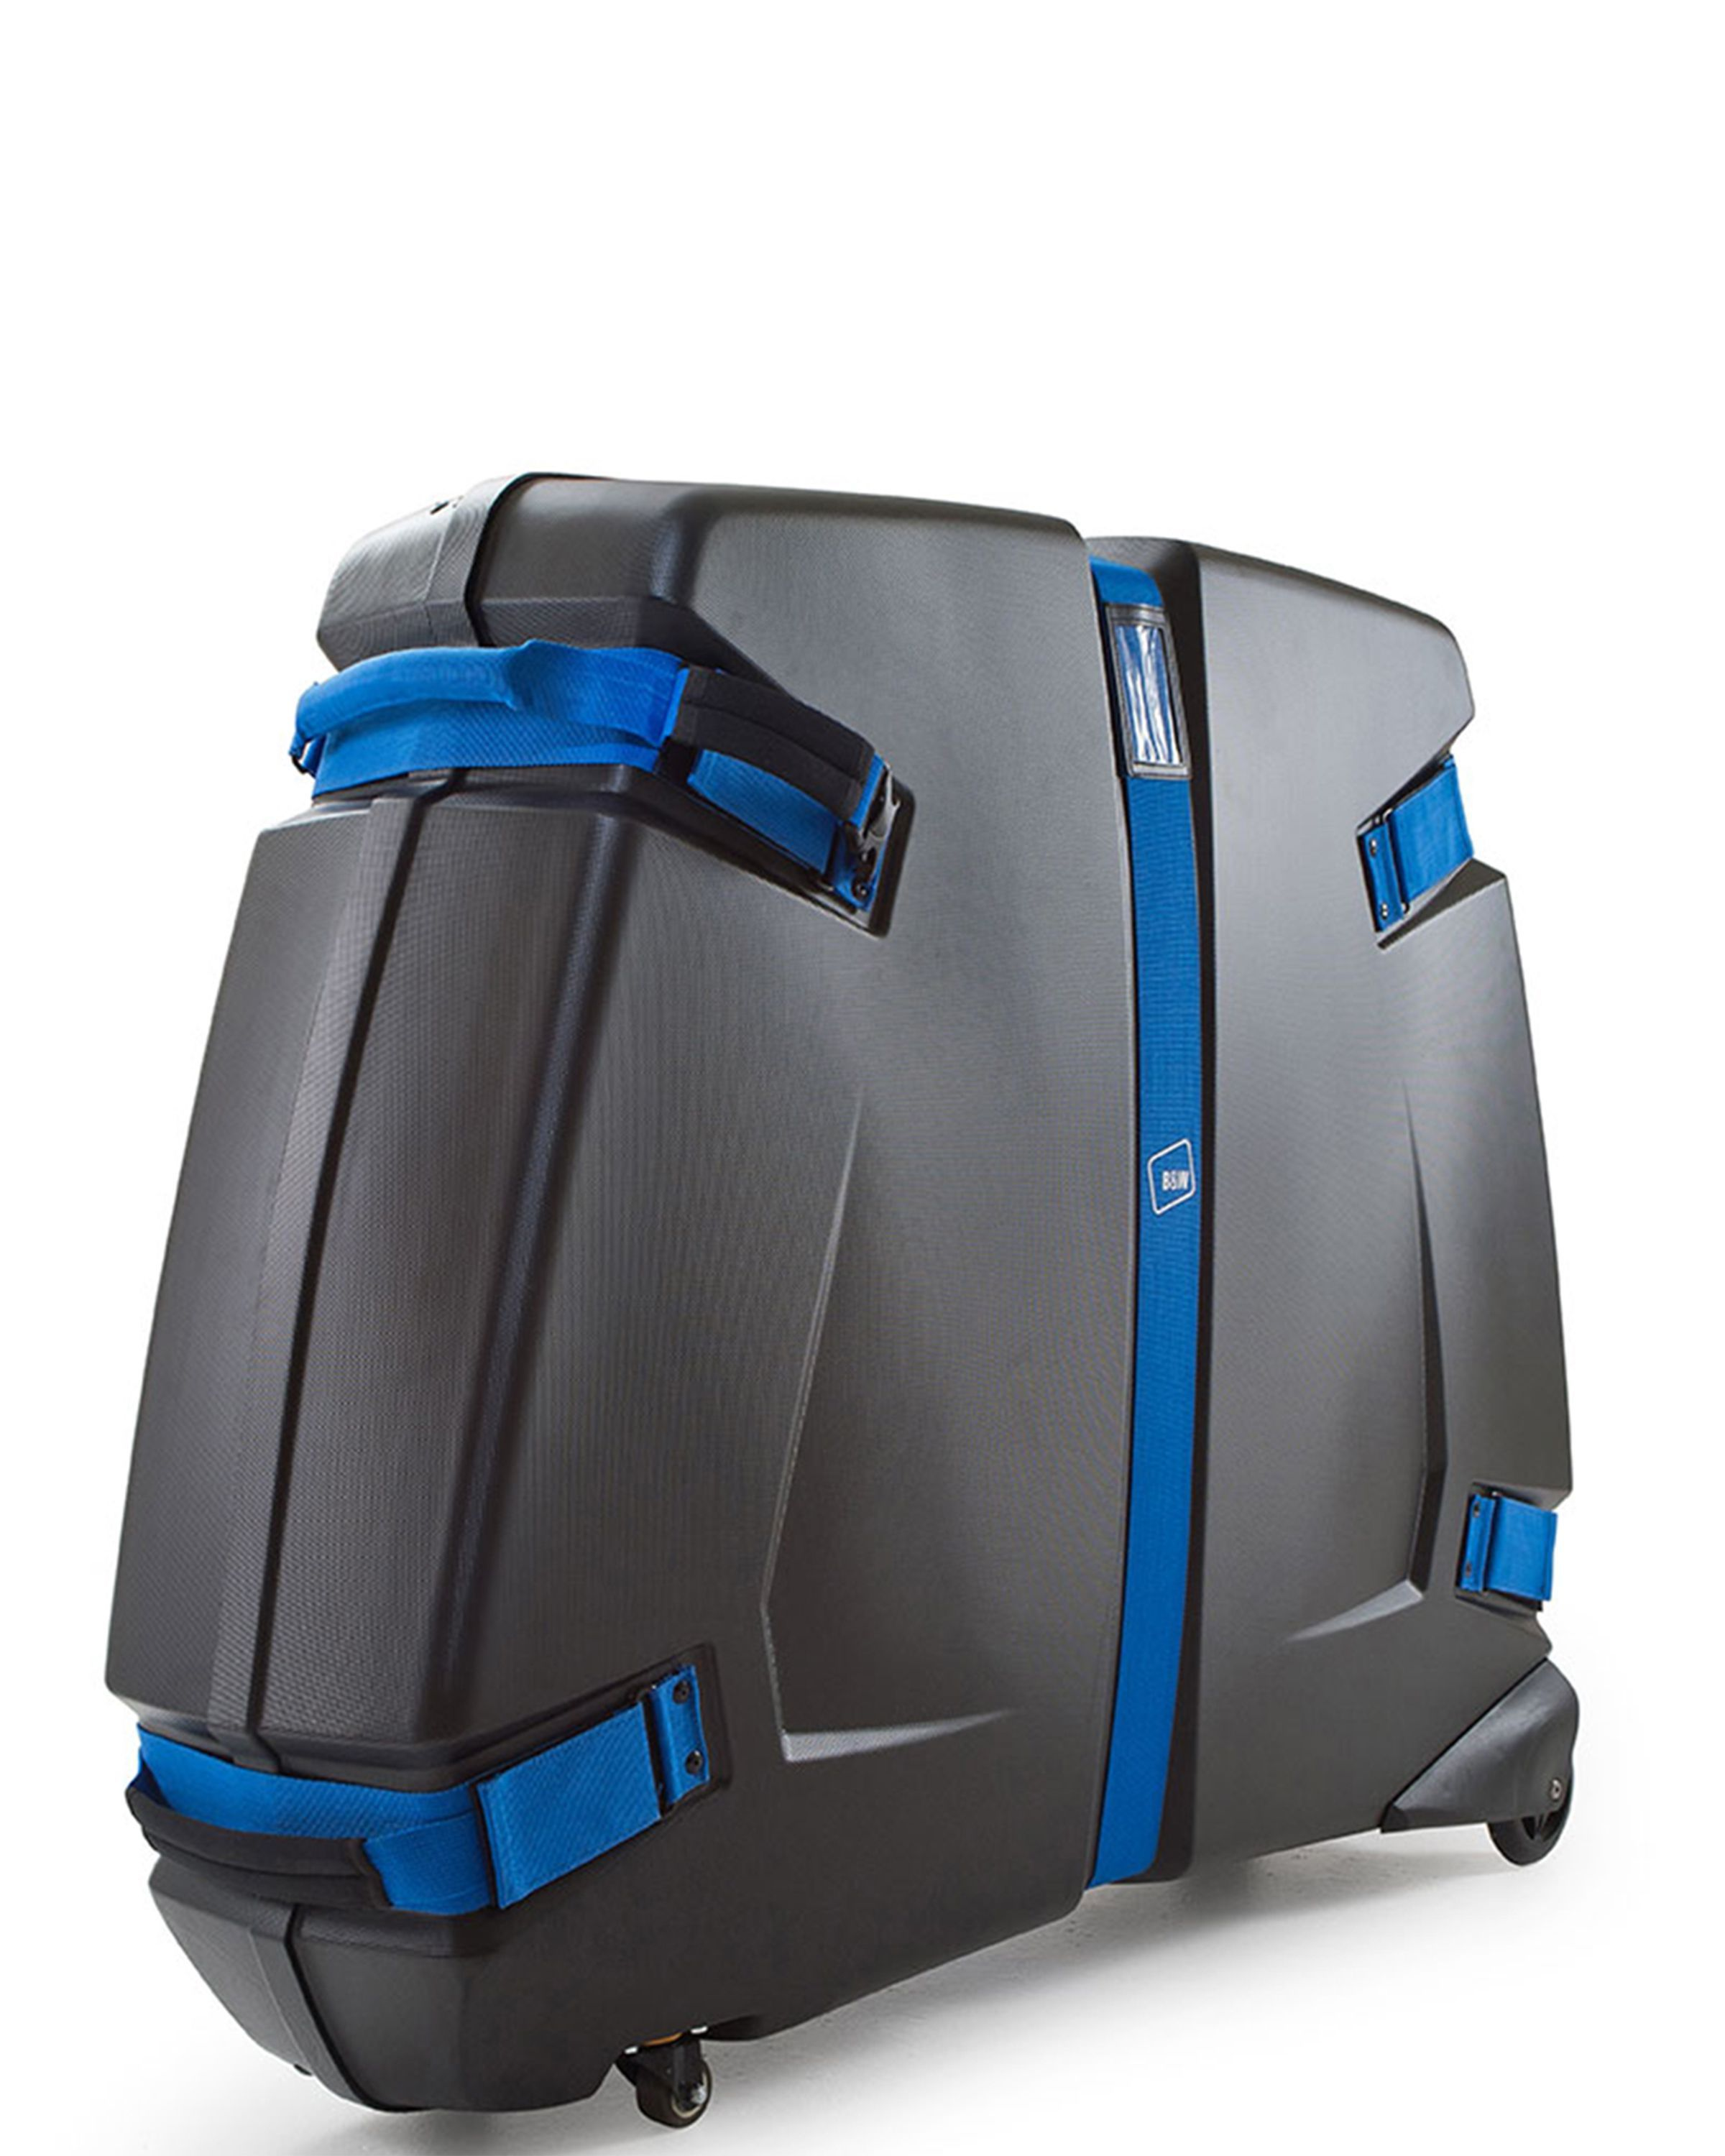 The Best Cases For Traveling With Your Bike Bike Bag Bags Bike